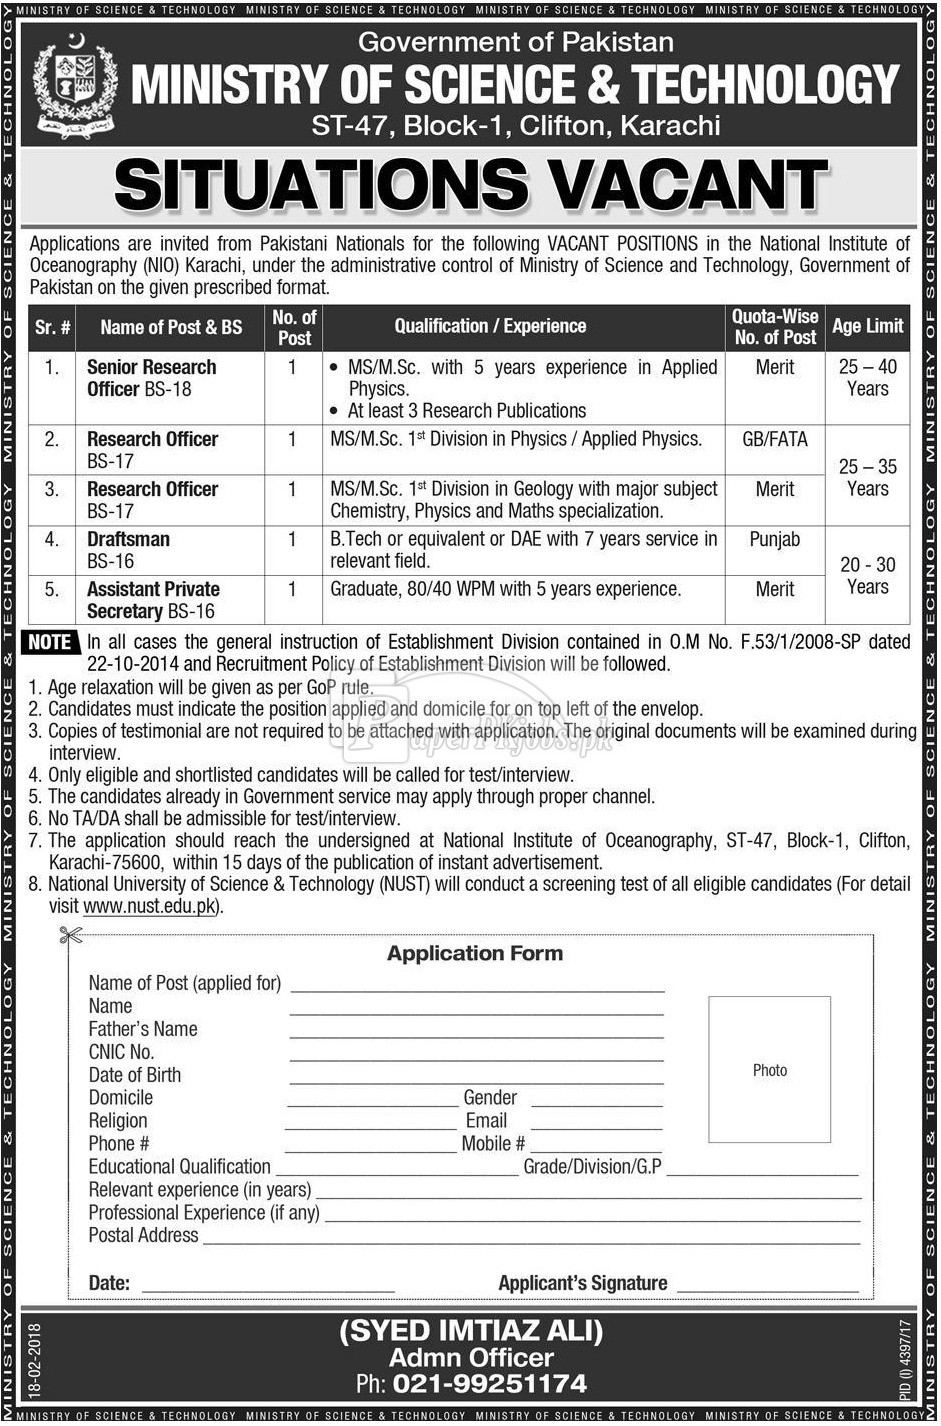 Ministry of Science & Technology Jobs 2018